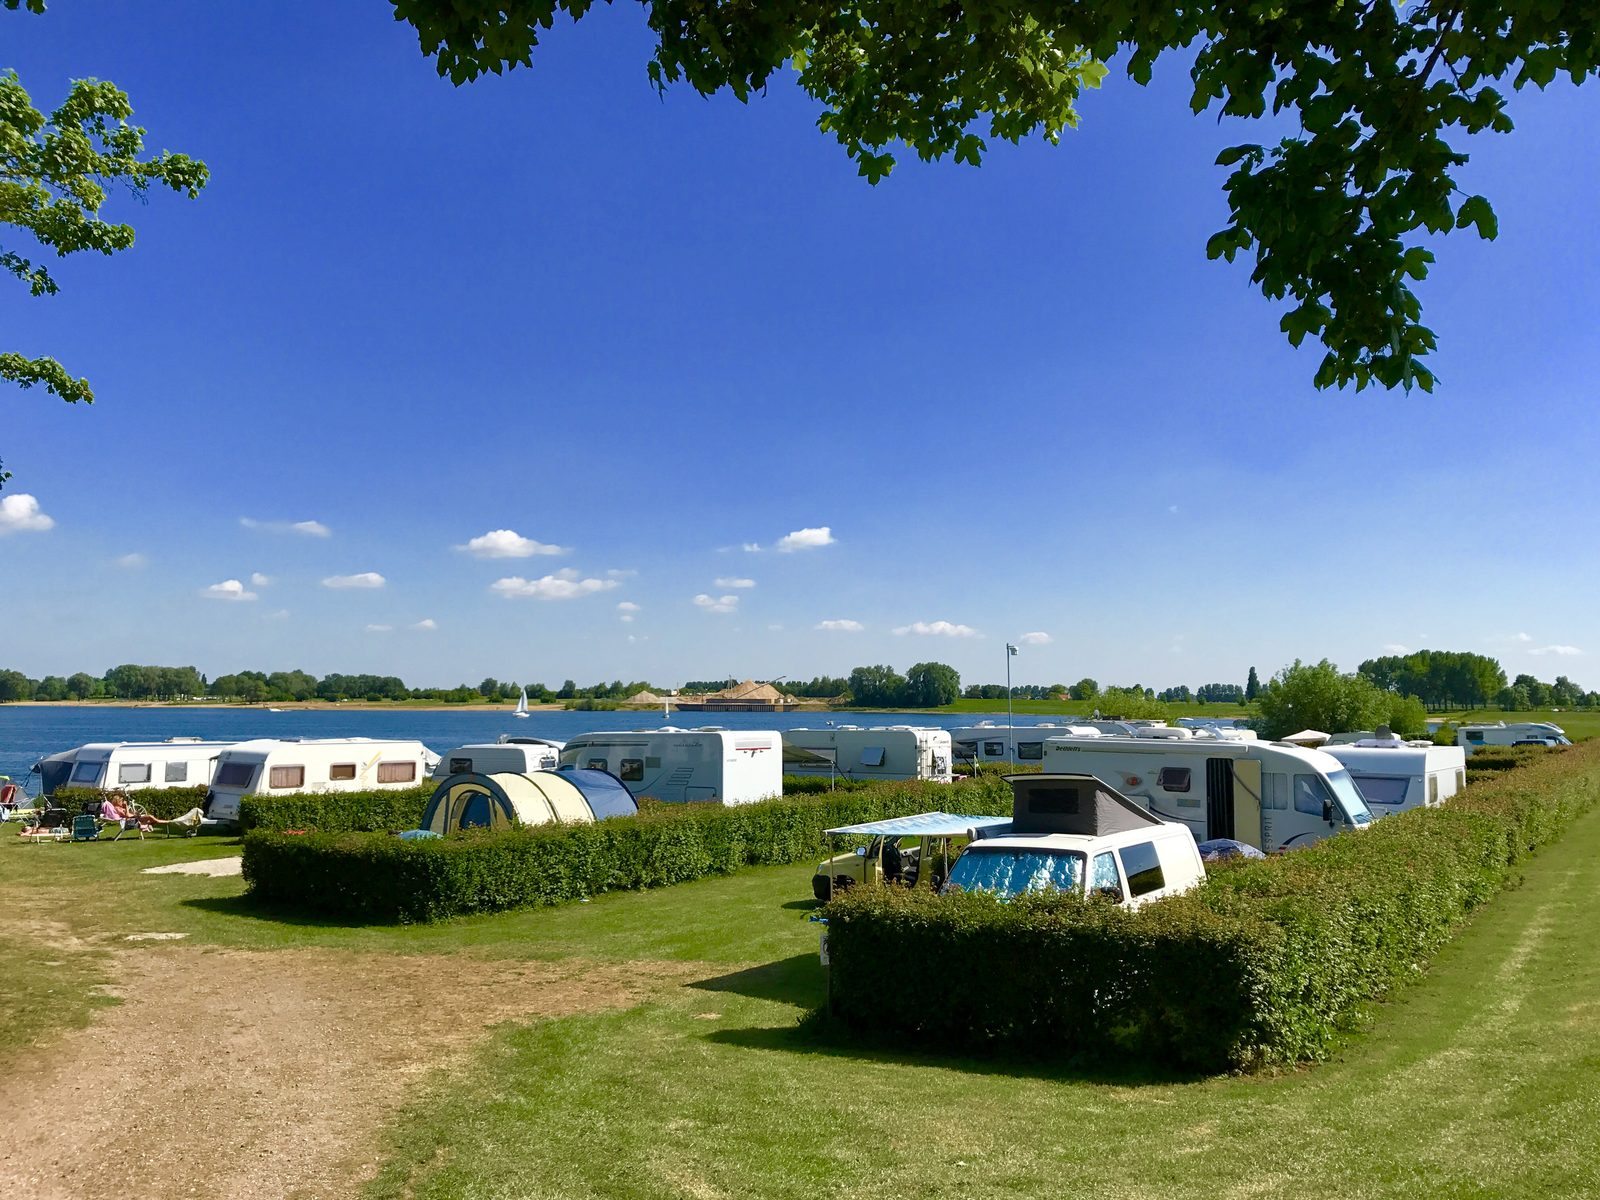 Camping along the IJssel